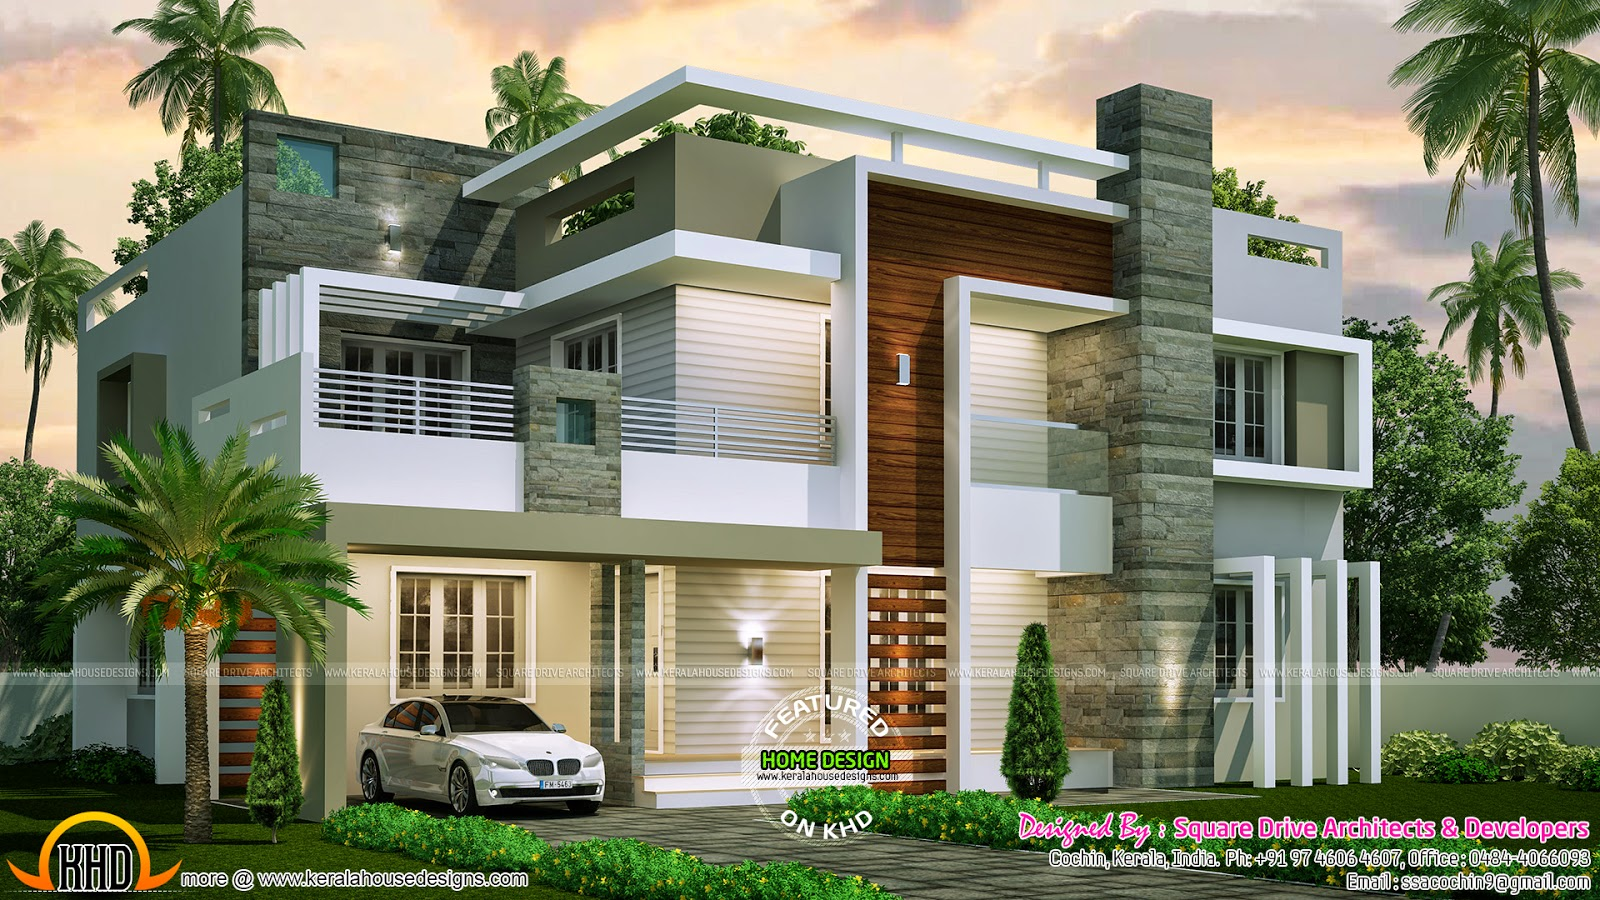 4 bedroom contemporary home design kerala home design Modern home house plans